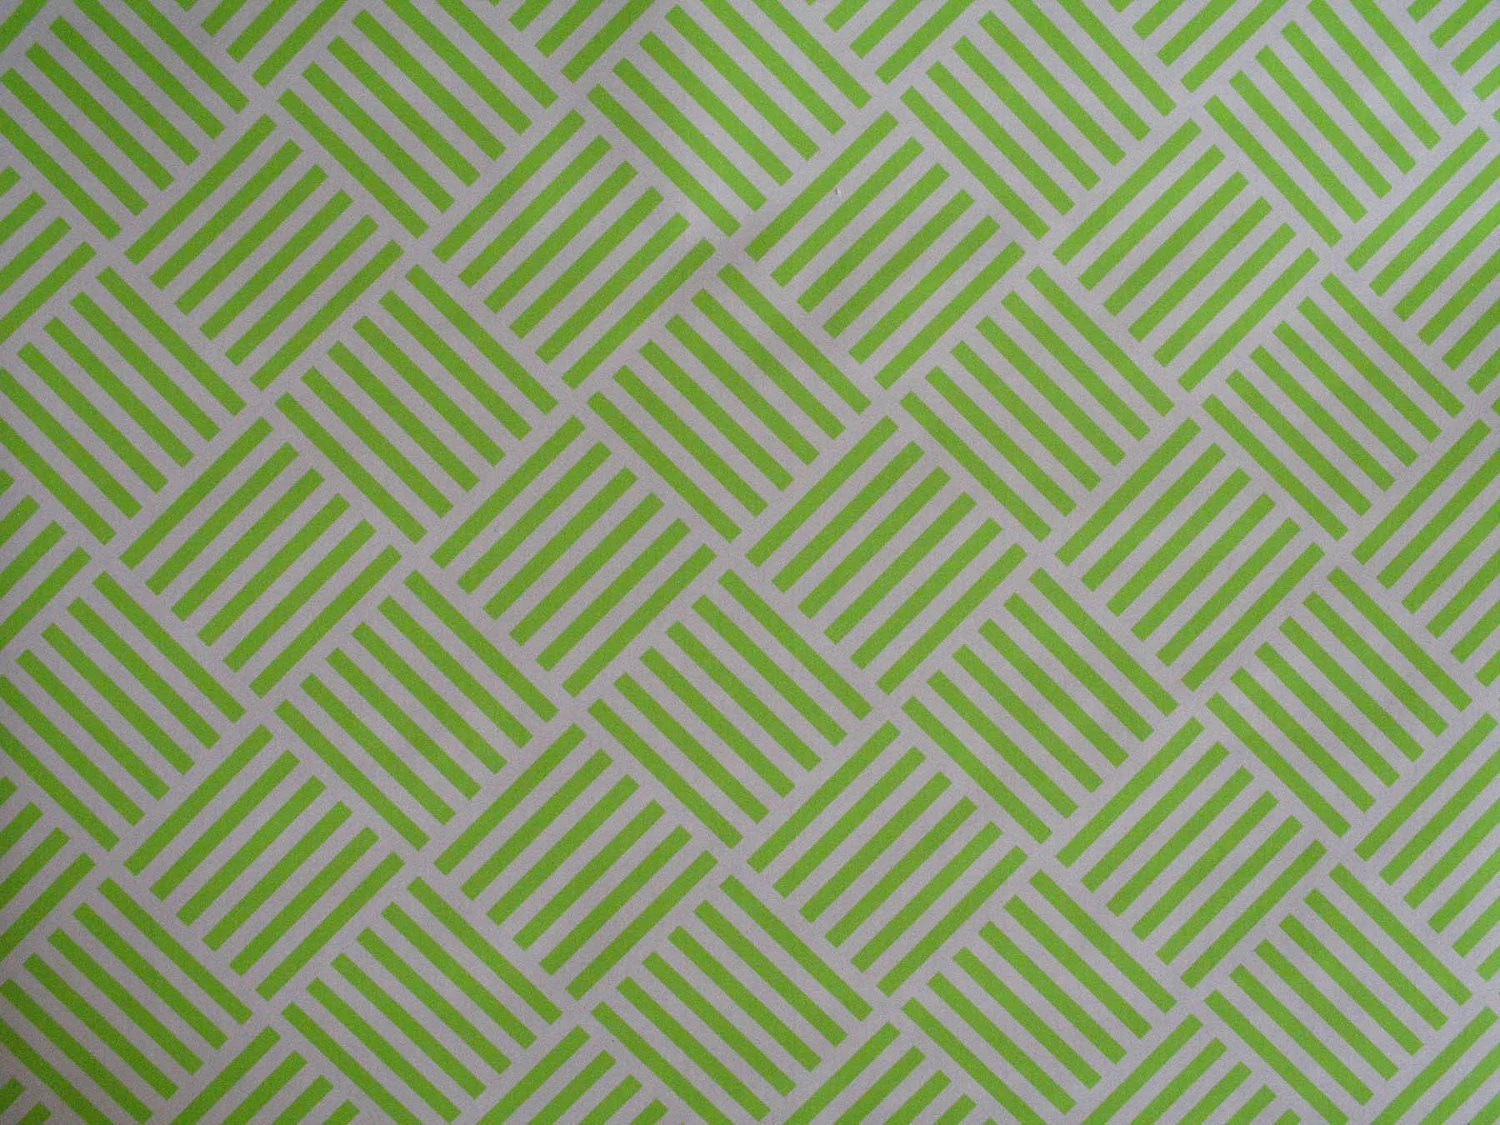 Contact Neon Paper Green